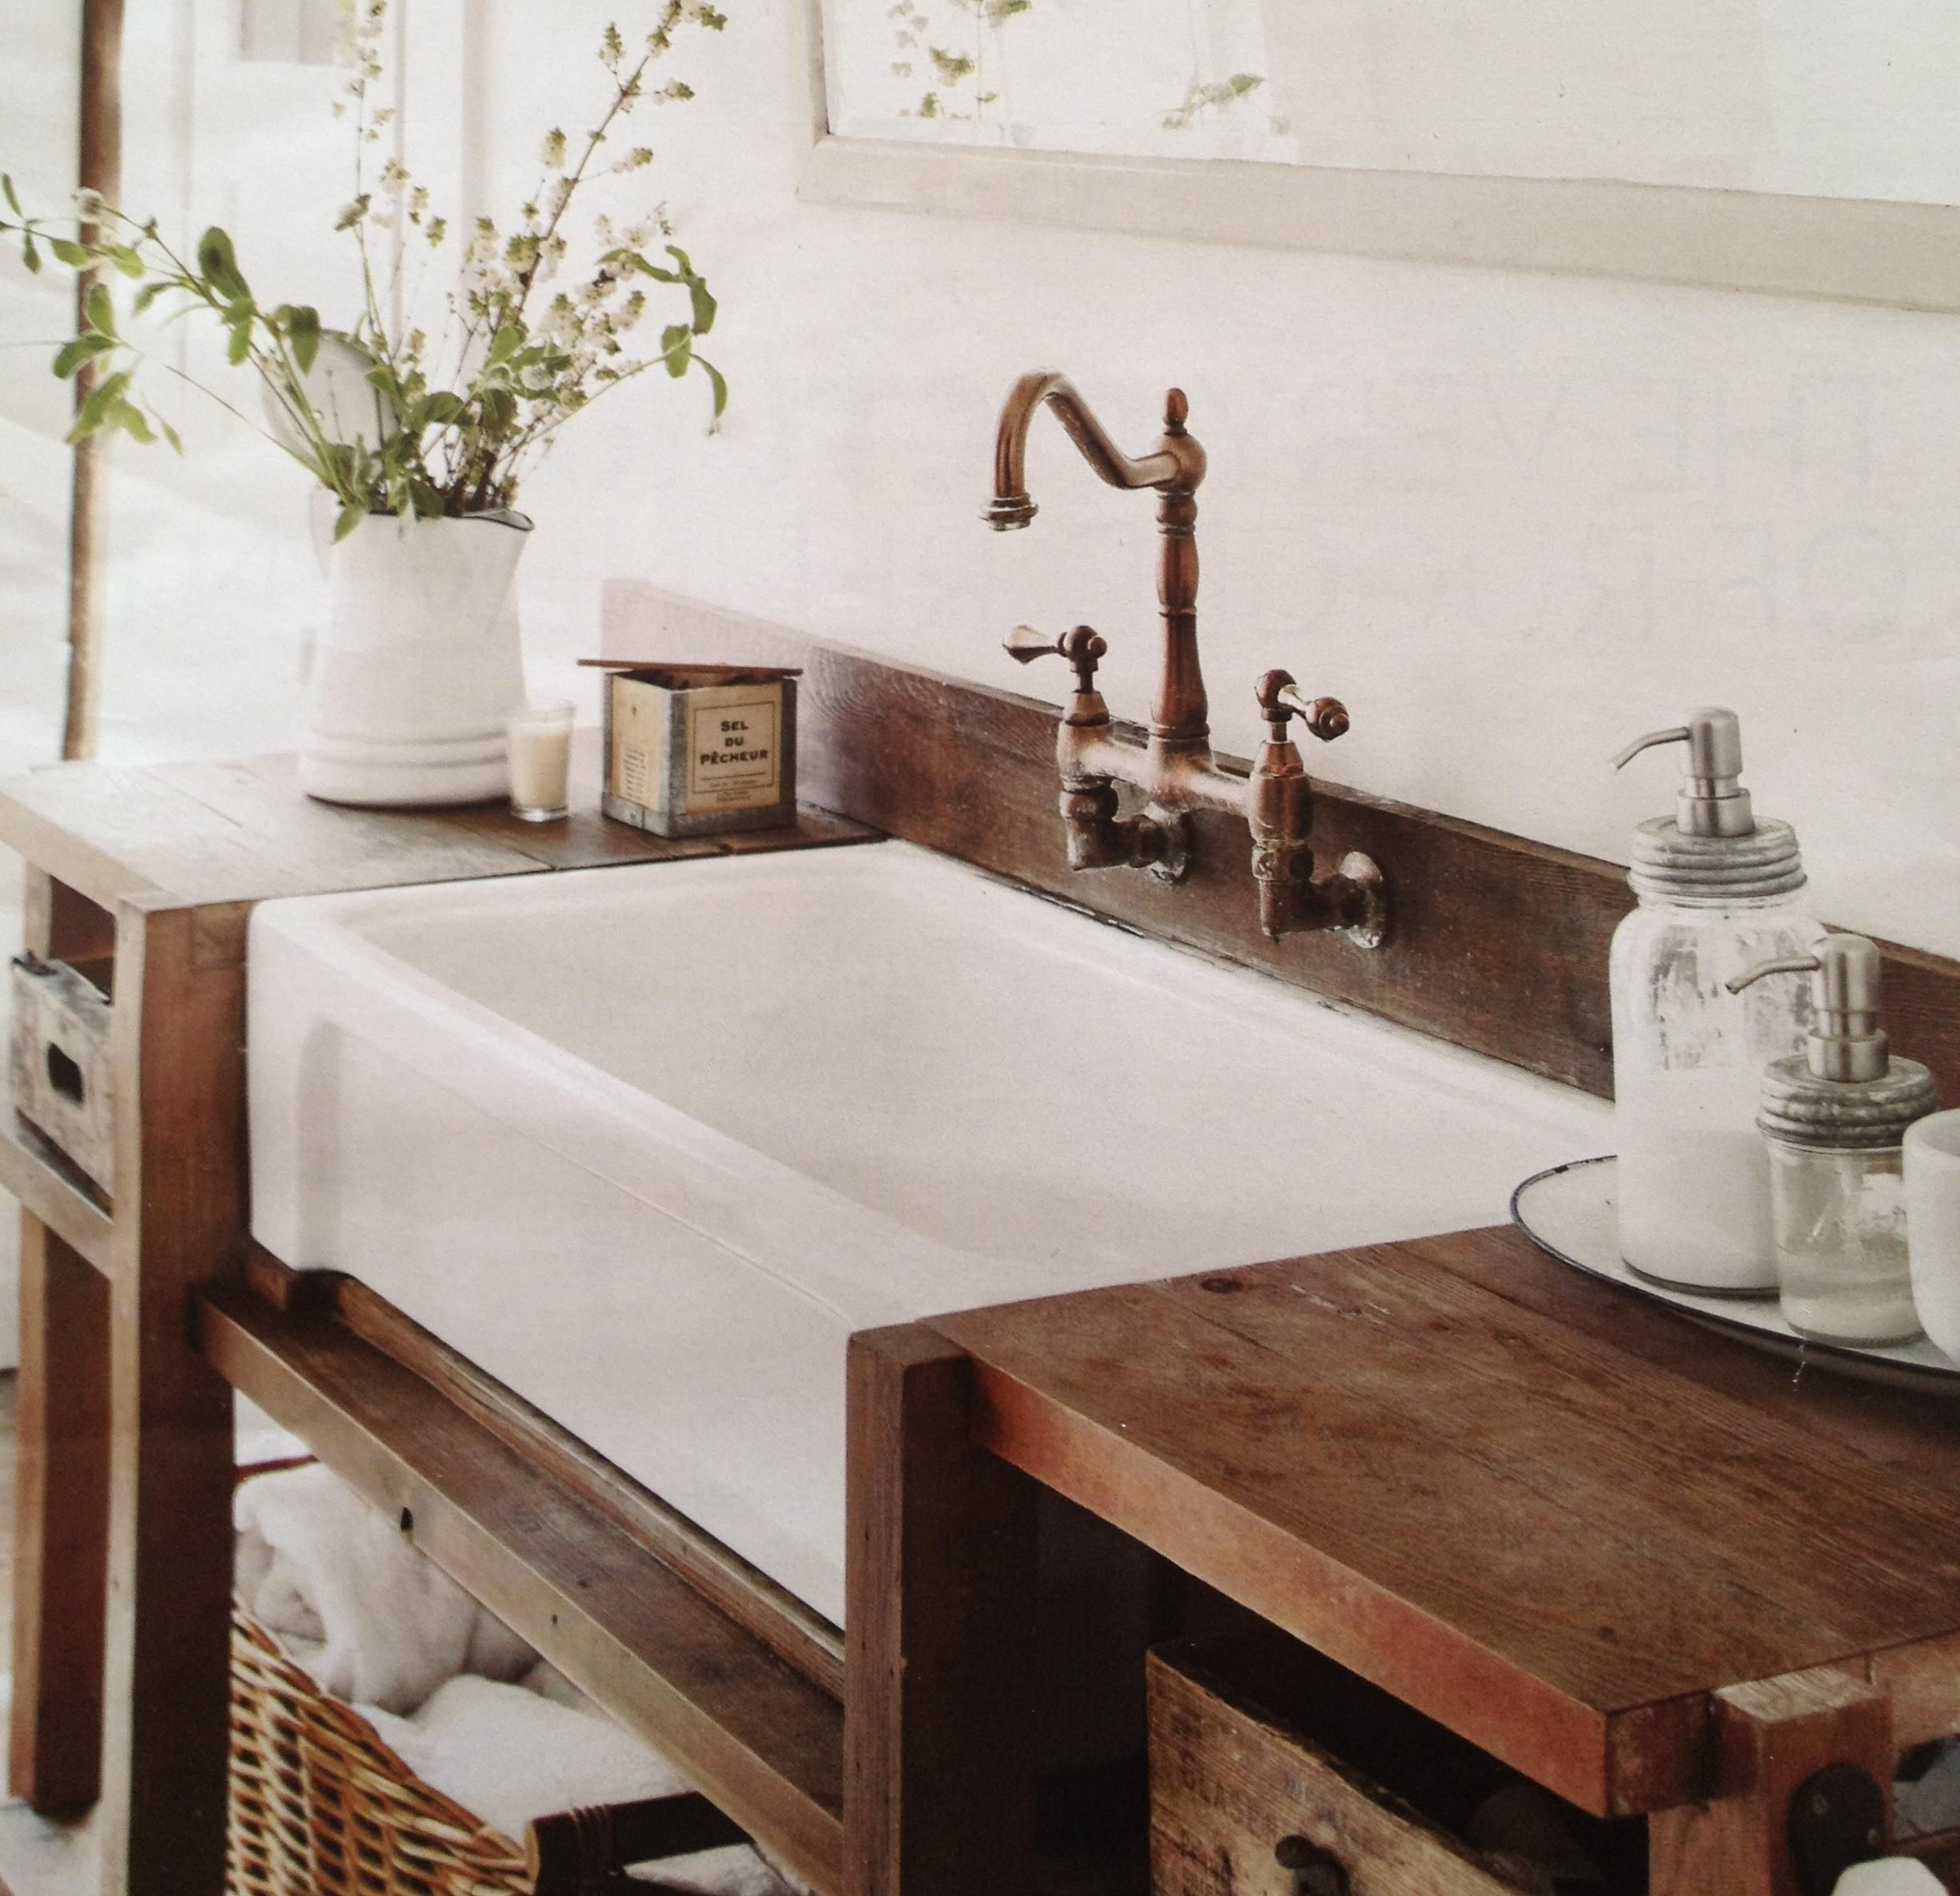 Farmhouse Apron Sink Bathroom Vanity